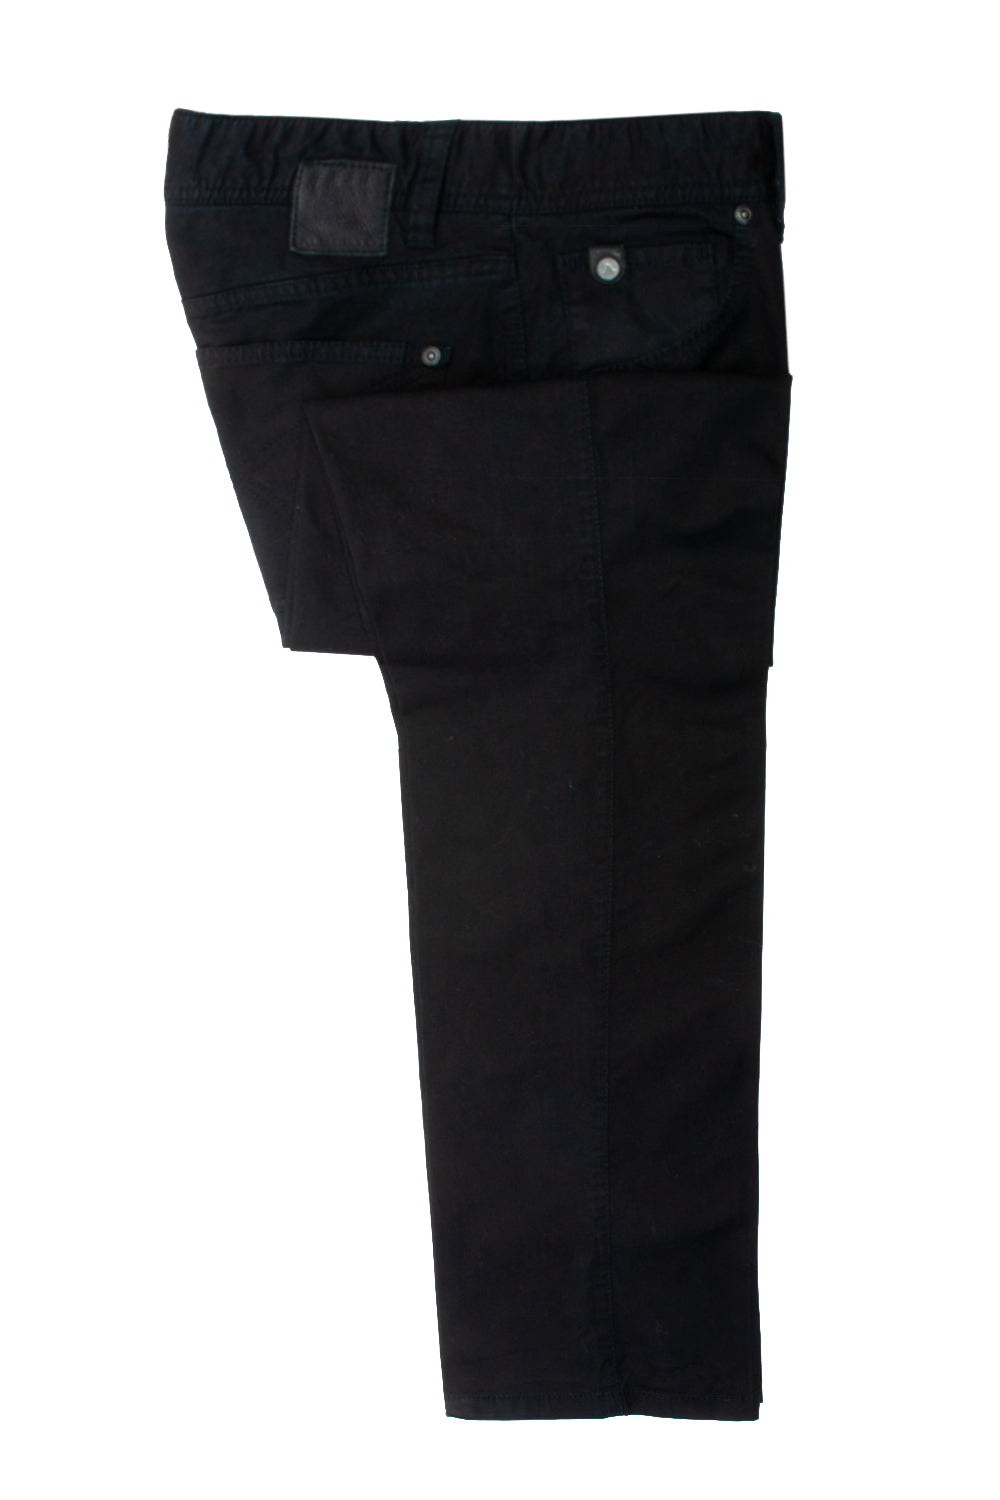 Alberto Black Stone Mini Structure Modern Fit Chinos for Luxmrkt.com Menswear Consignment Edmonton